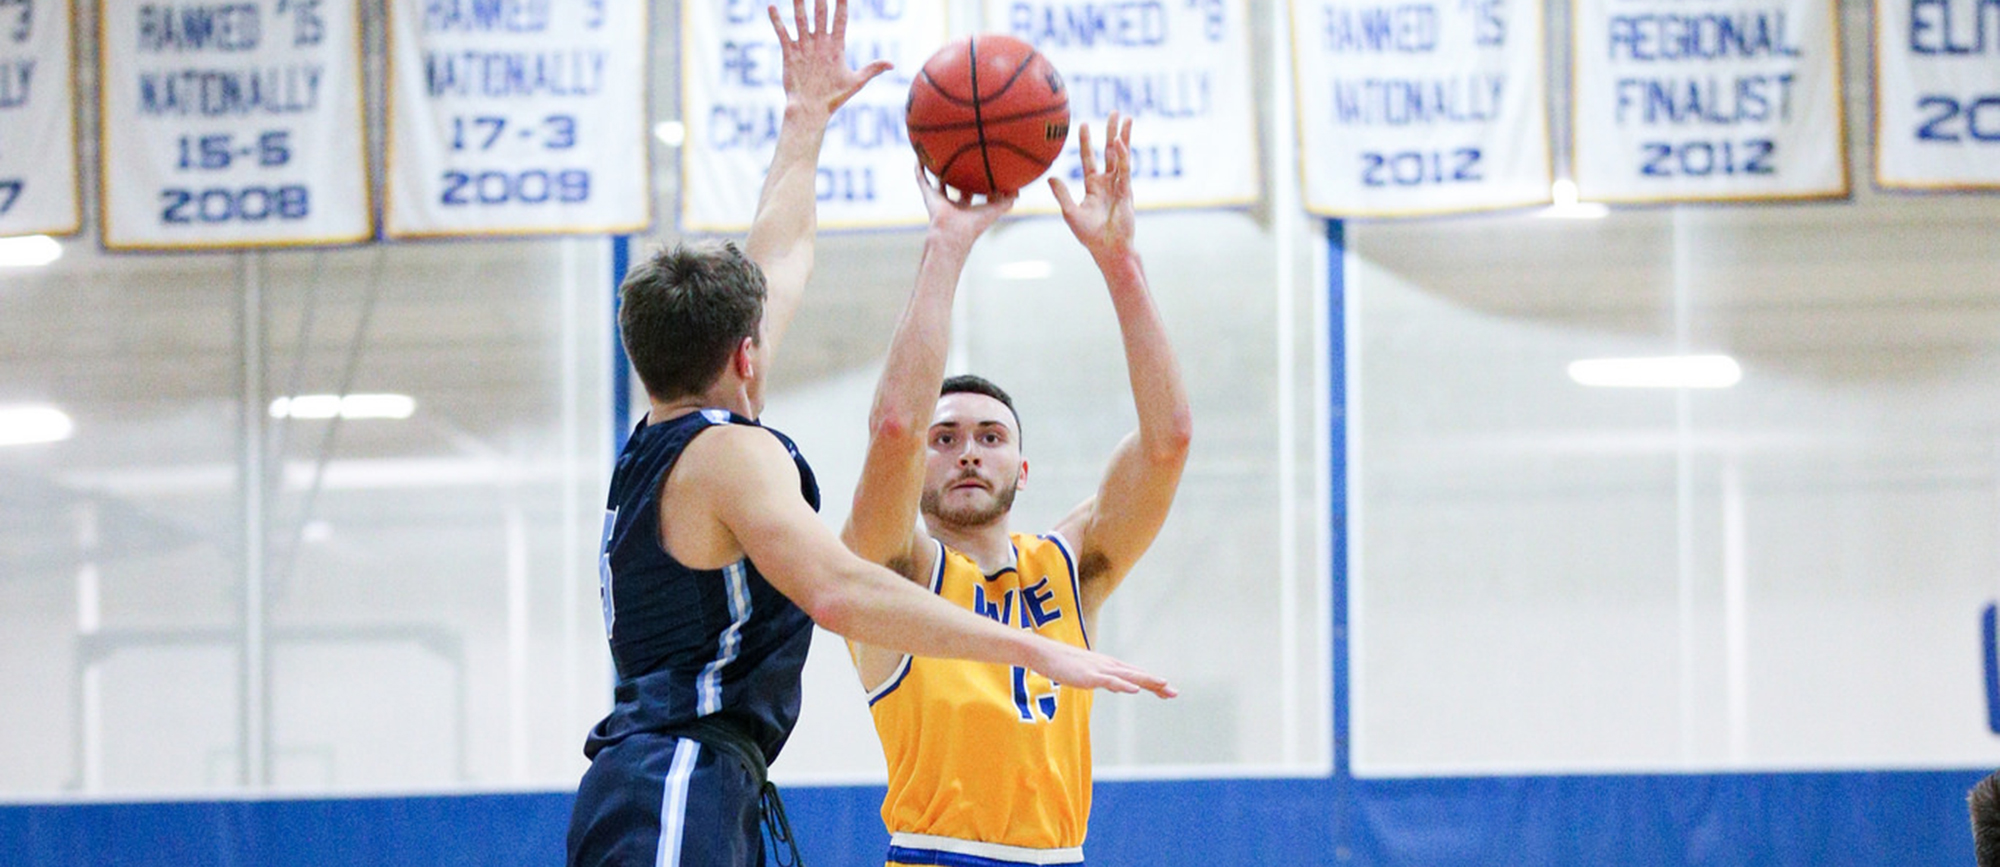 Alex Sikorski scored a career-high 27 points in Western New England's record-setting win over UNE on Saturday. (Photo by Chris Marion)